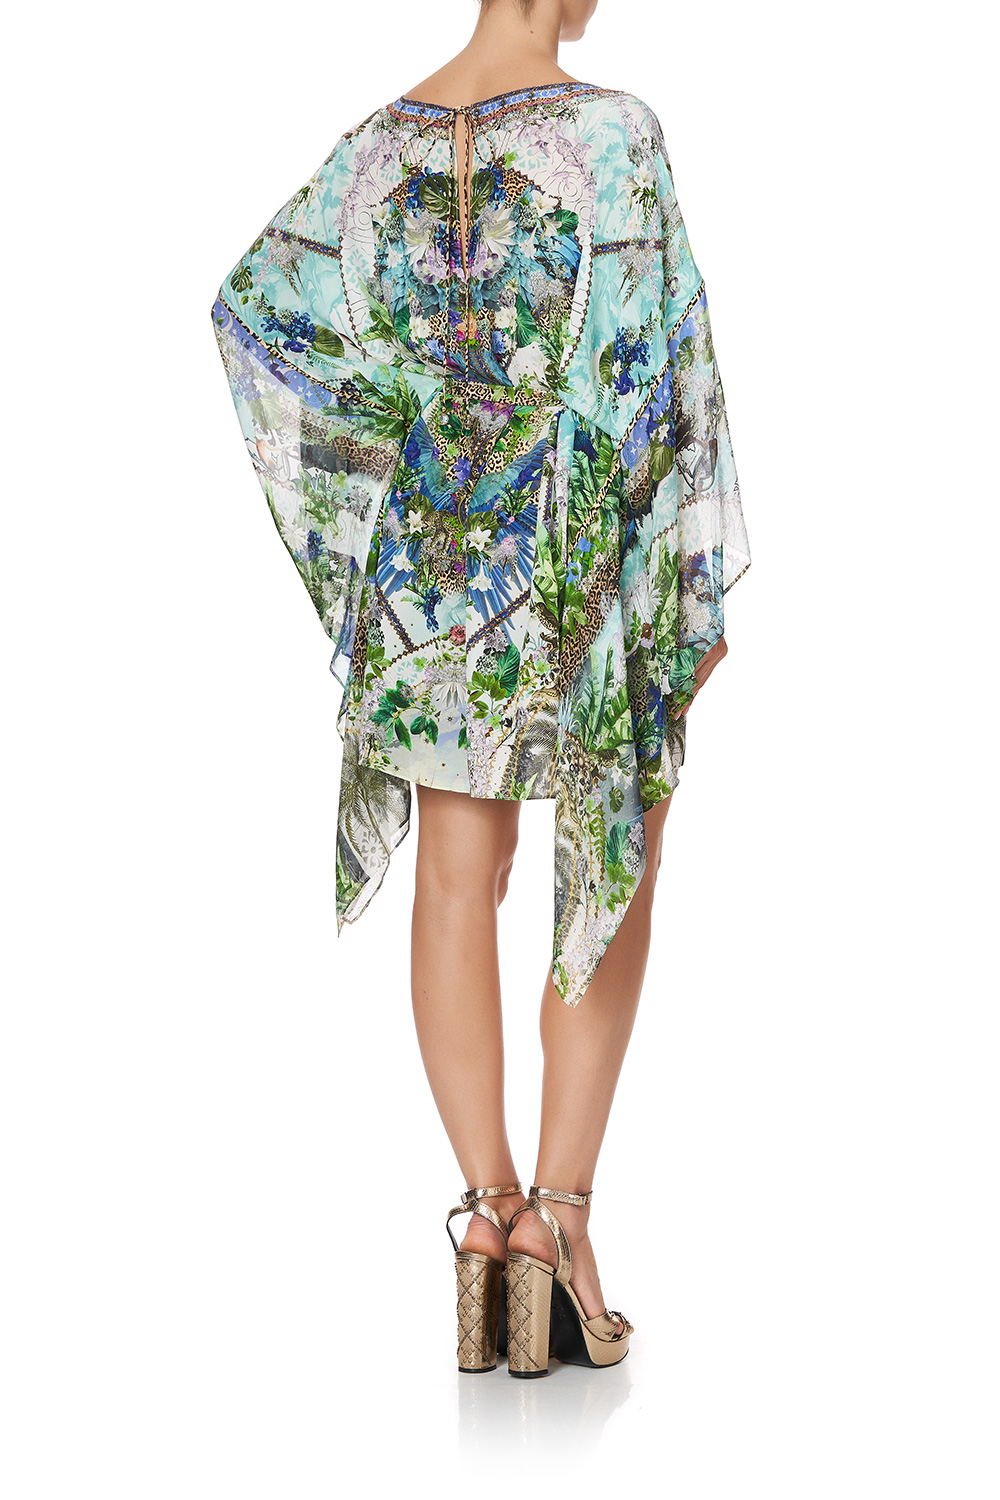 camilla_short_kaftan_with_sheer_sleeves_moon_garden_8